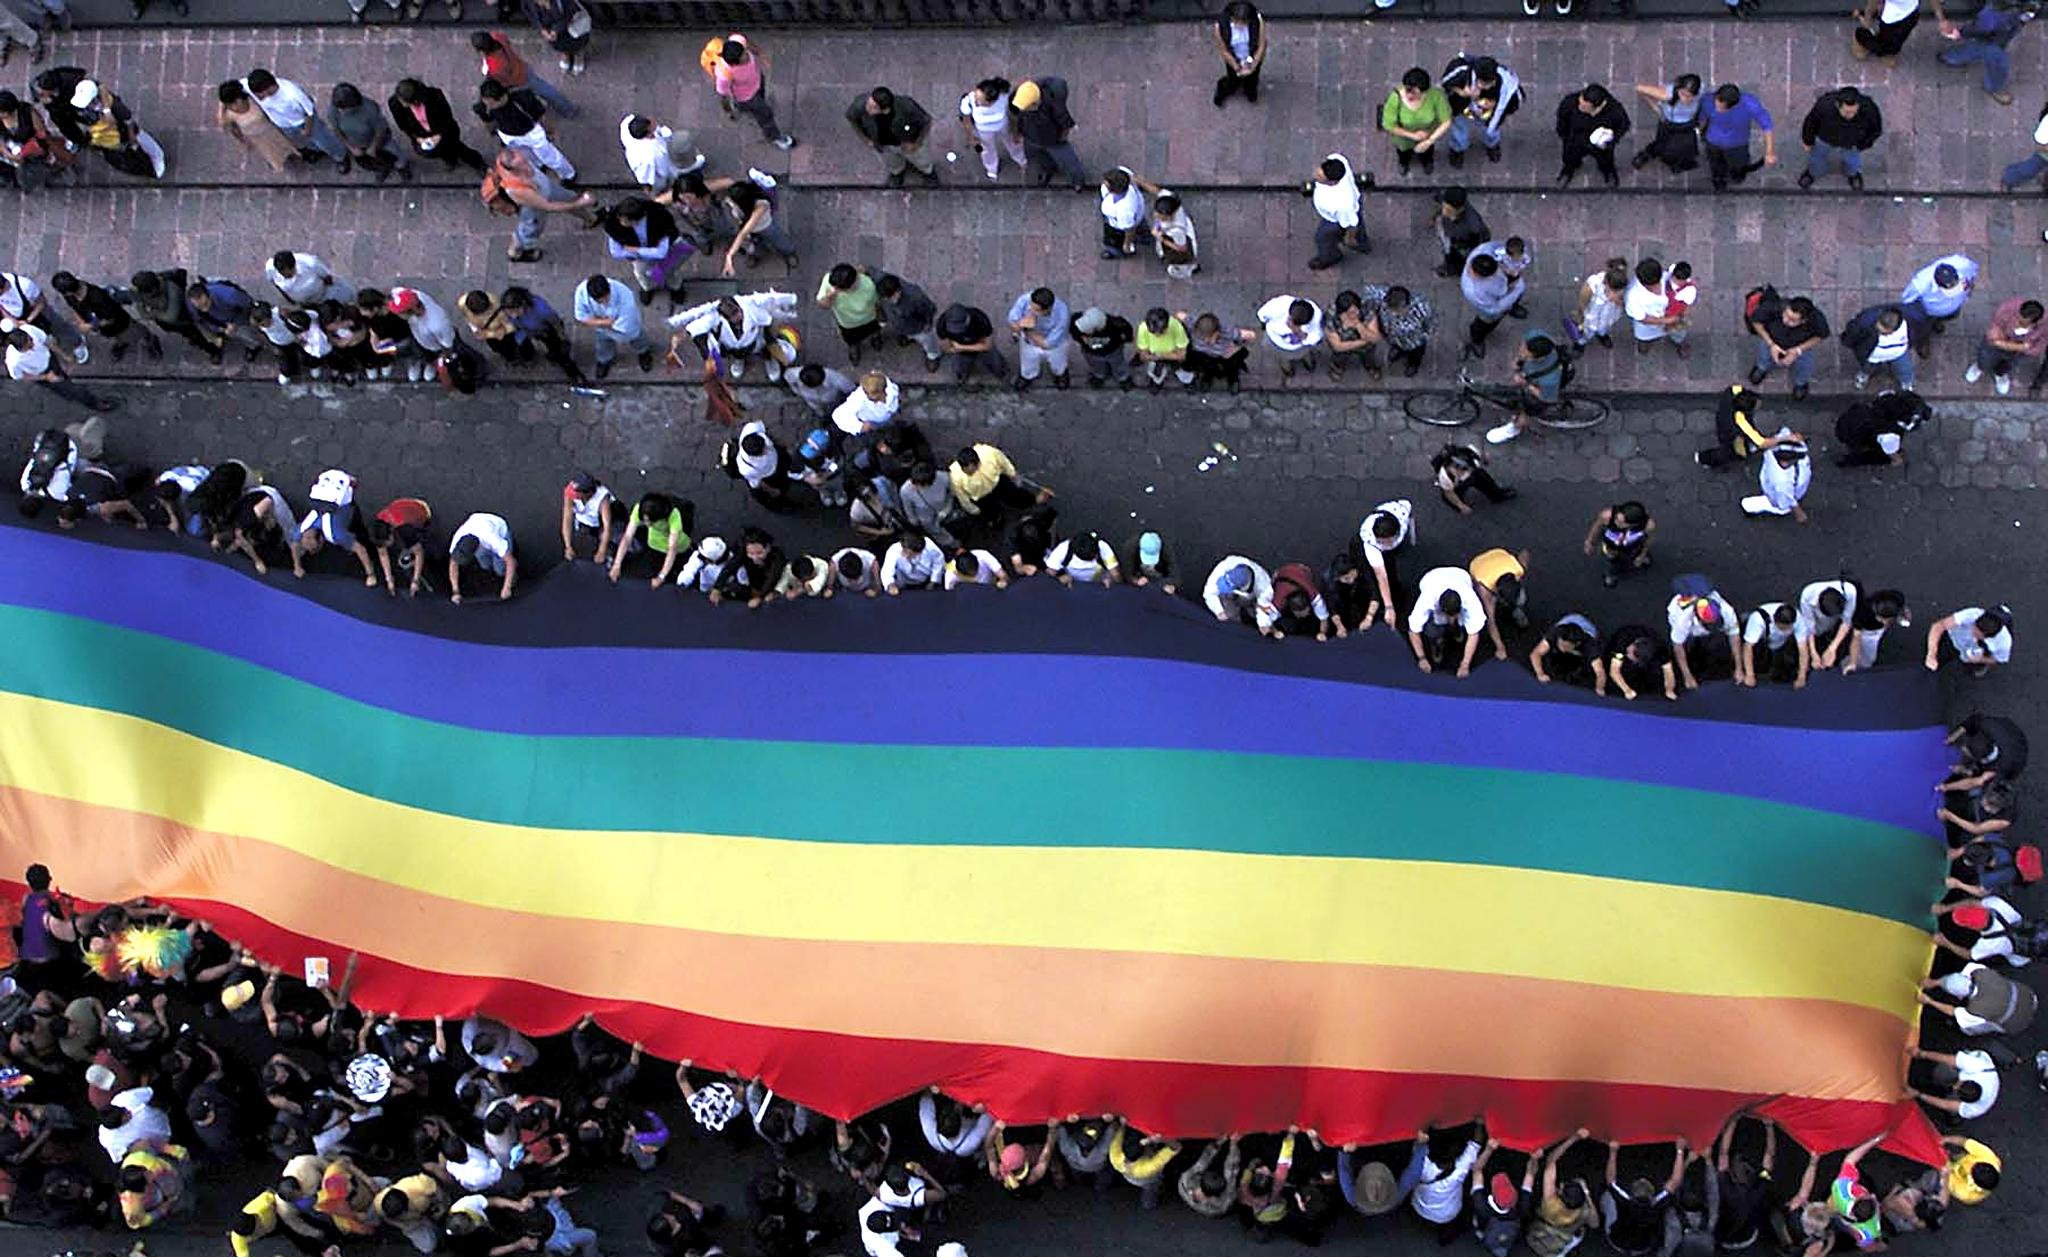 Pride march,  June 2001, Mexico City. JORGE UZON/AFP/Getty Images